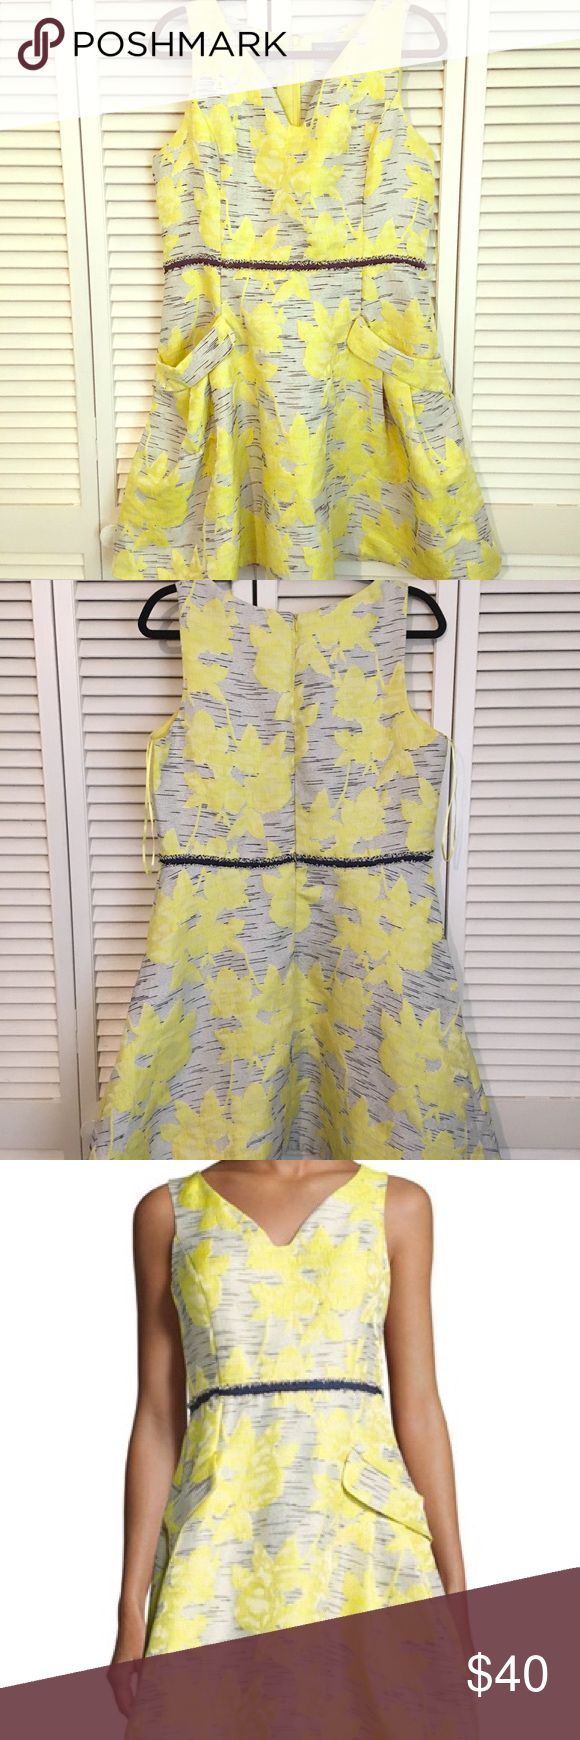 """Donna Ricco Sleeveless Floral Jacquard Dress Donna Ricco Sleeveless Floral Jacquard Dress in Yellow Pattern. Approx: 36""""L from shoulder to hem. V neckline, fringed band at waist, slide slip pockets, A line silhouette, back zip, cotton/spandex, machine wash. I'm bummed the pictures crop to square but if you google this Dress images do show up in full. It really is a fun and lovely dress to have for a wedding or special occasion. Donna Ricco Dresses Mini"""